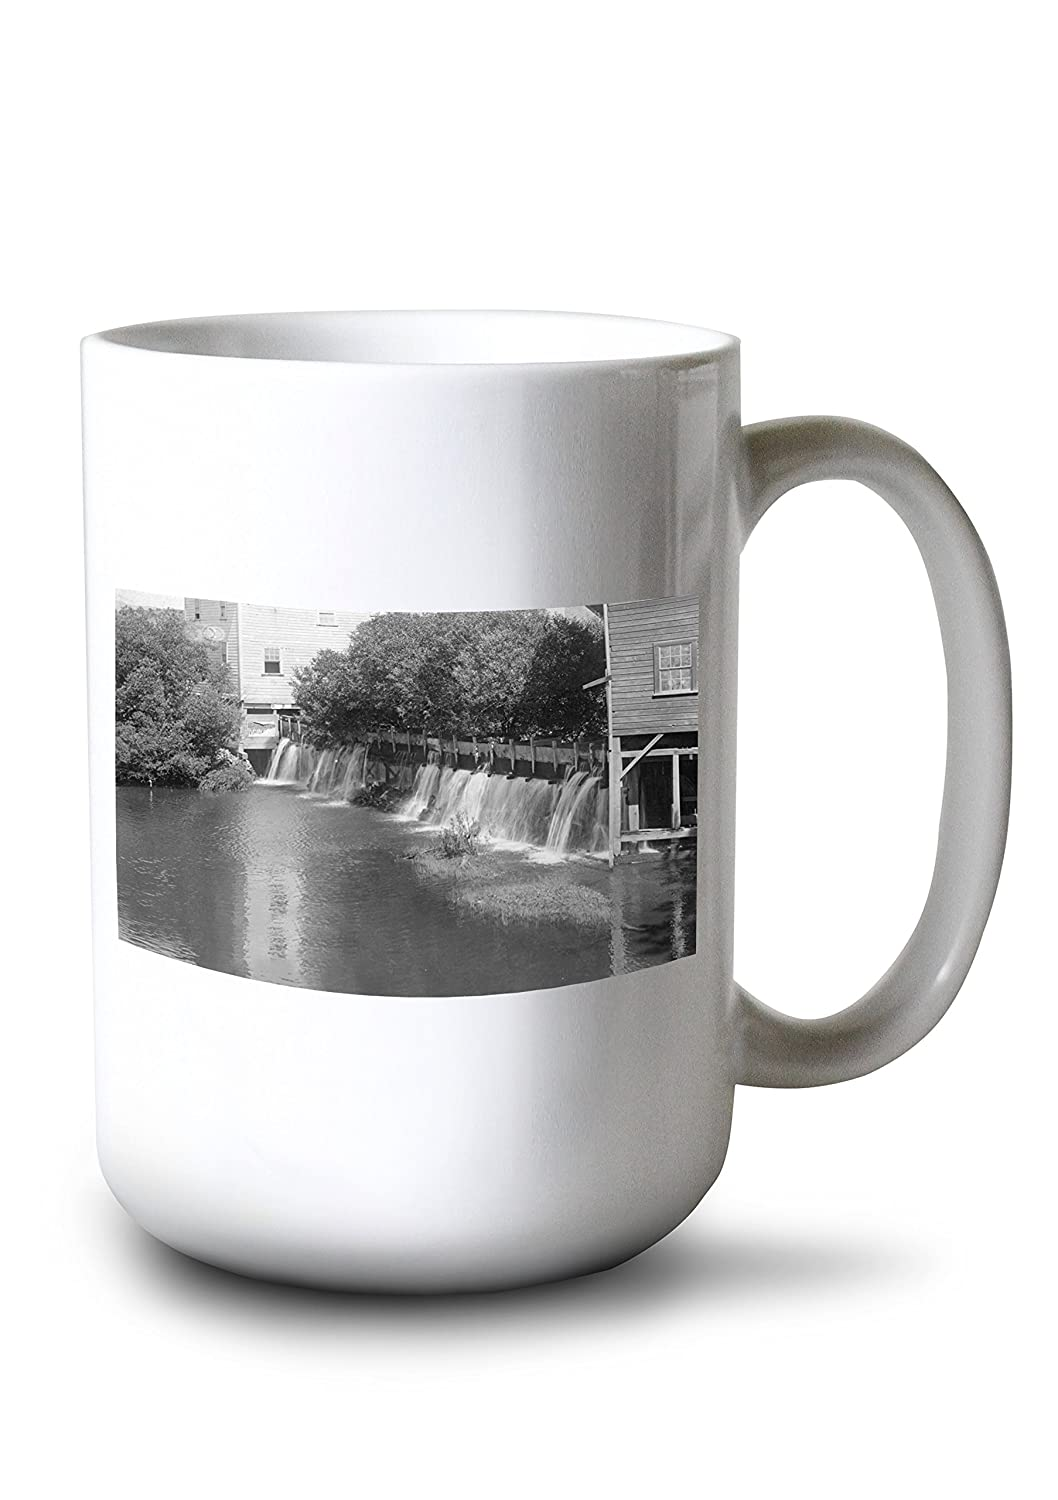 Adin、カリフォルニア – View of aミル池、ダム 15oz Mug LANT-3P-15OZ-WHT-11751 B077RZ9N4V  15oz Mug